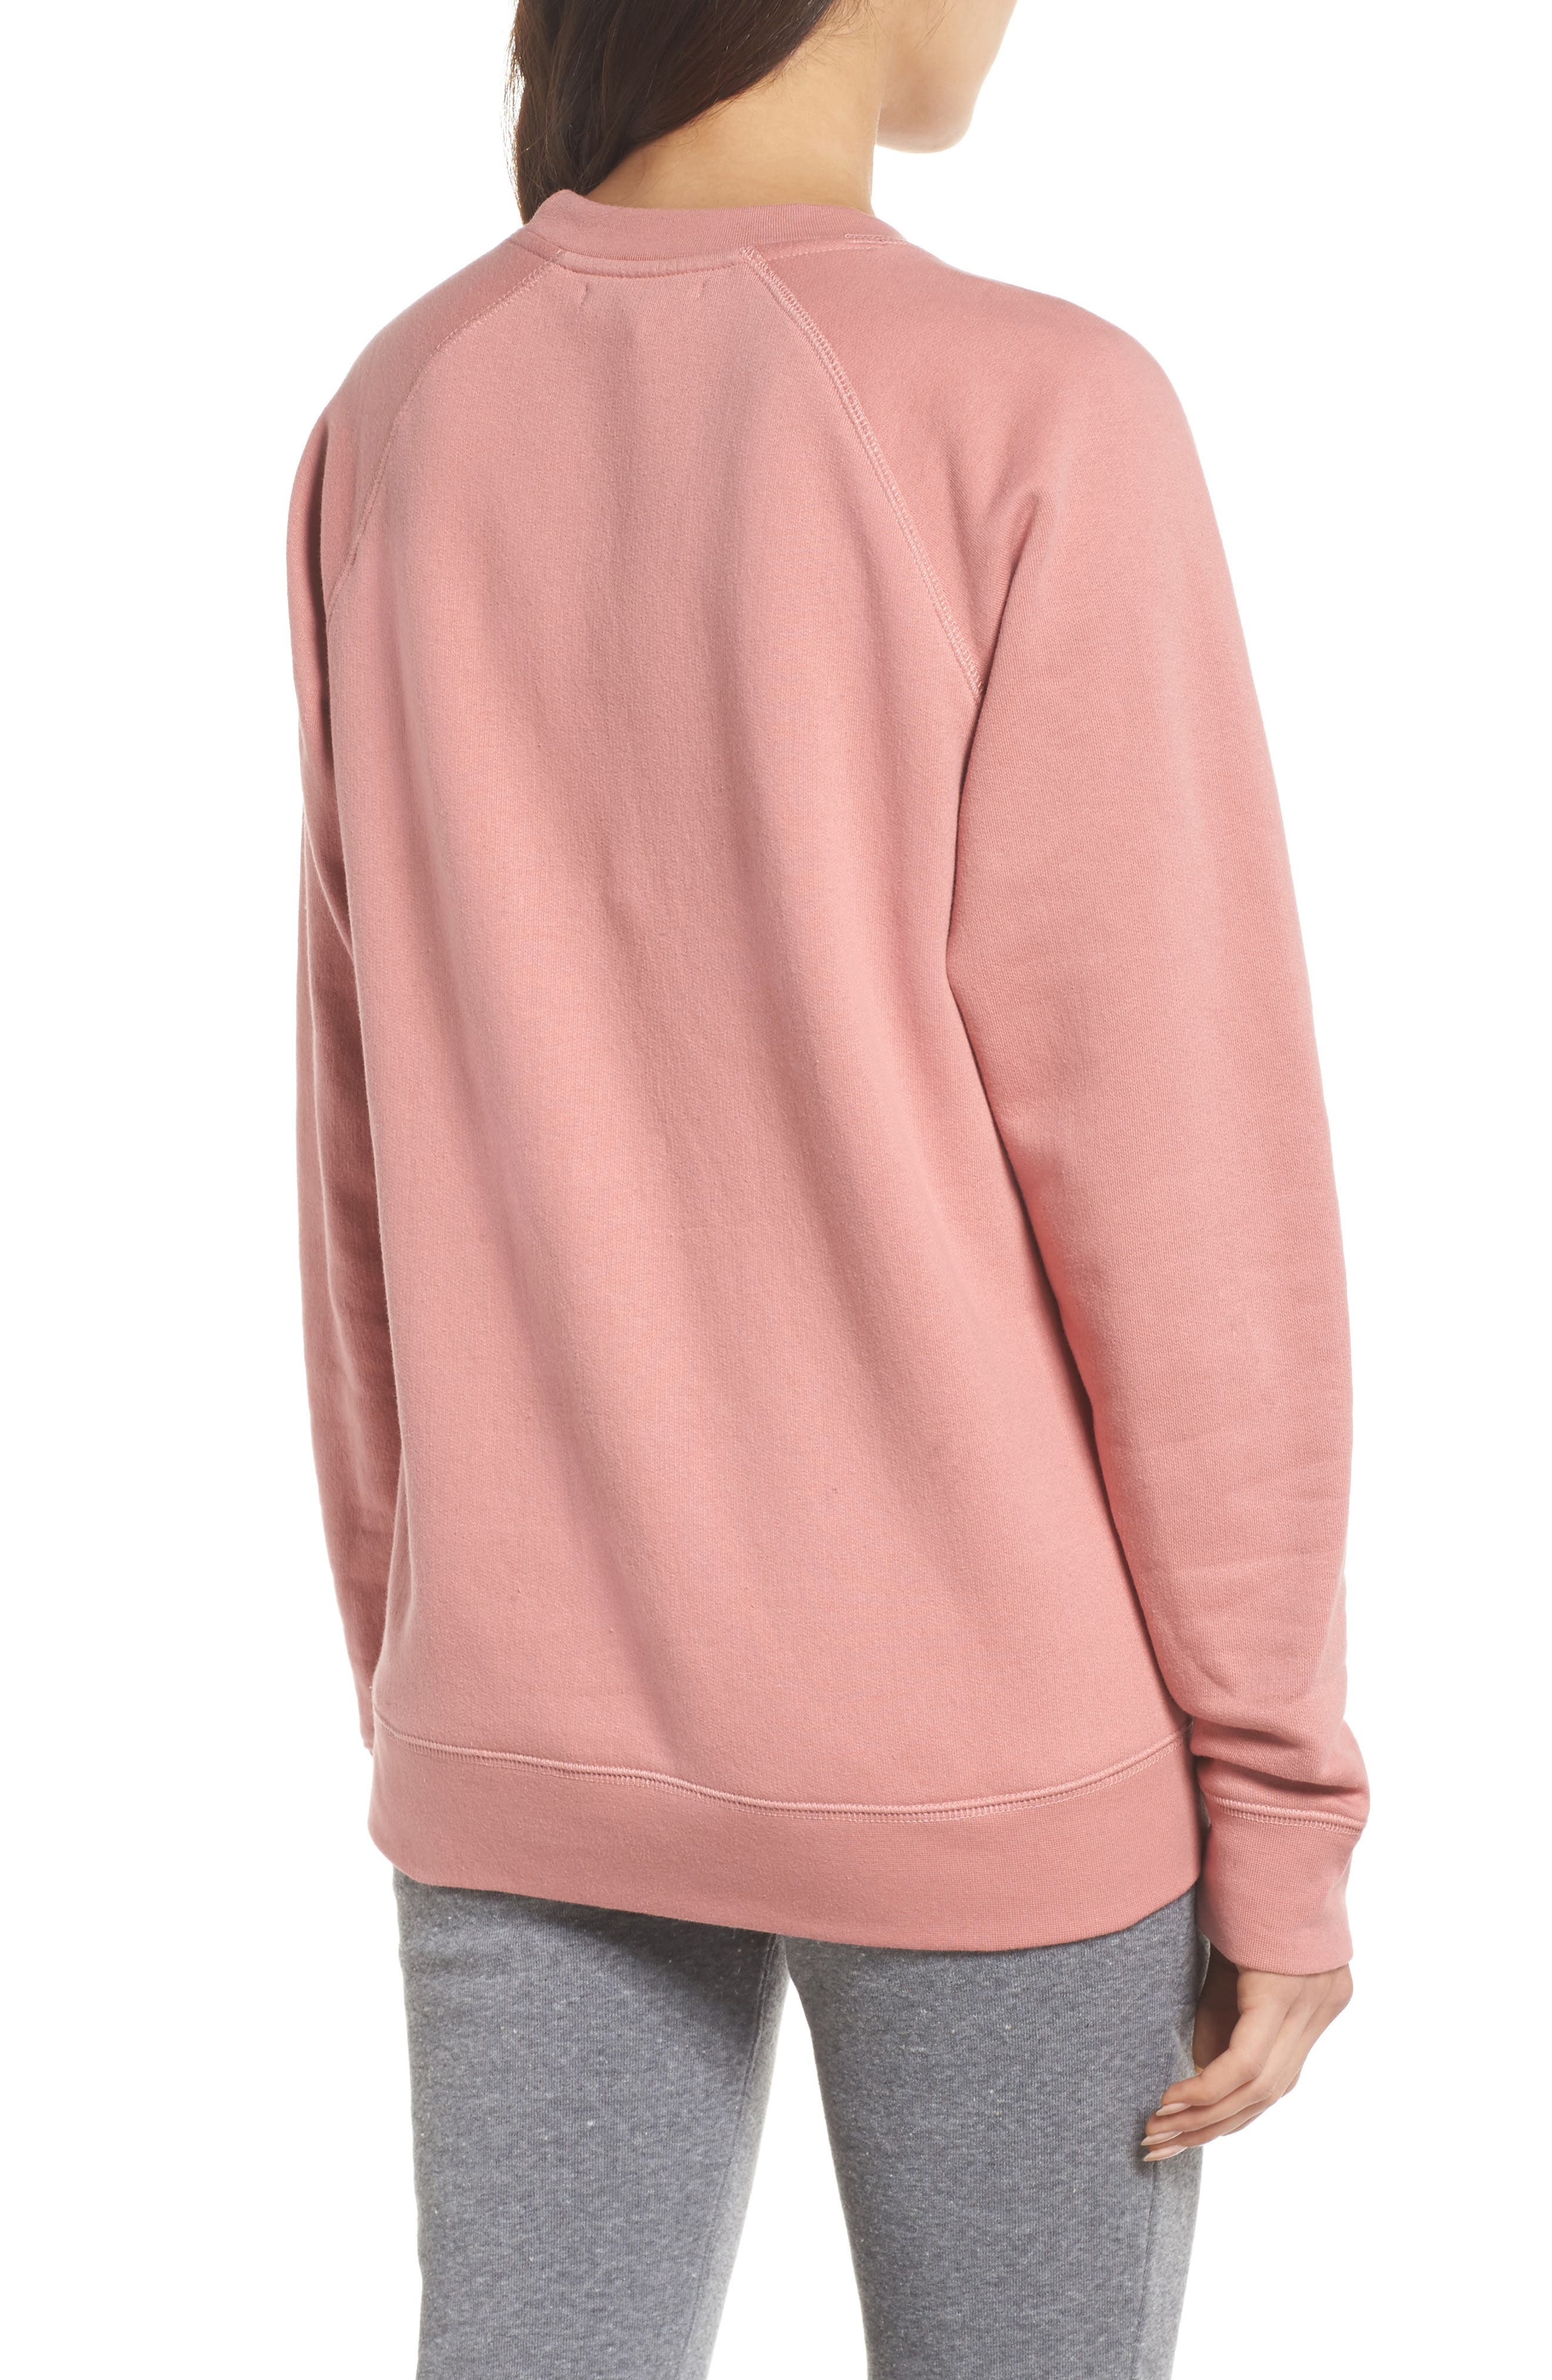 Rosé Okay Sweatshirt,                             Alternate thumbnail 2, color,                             Dusty Rose